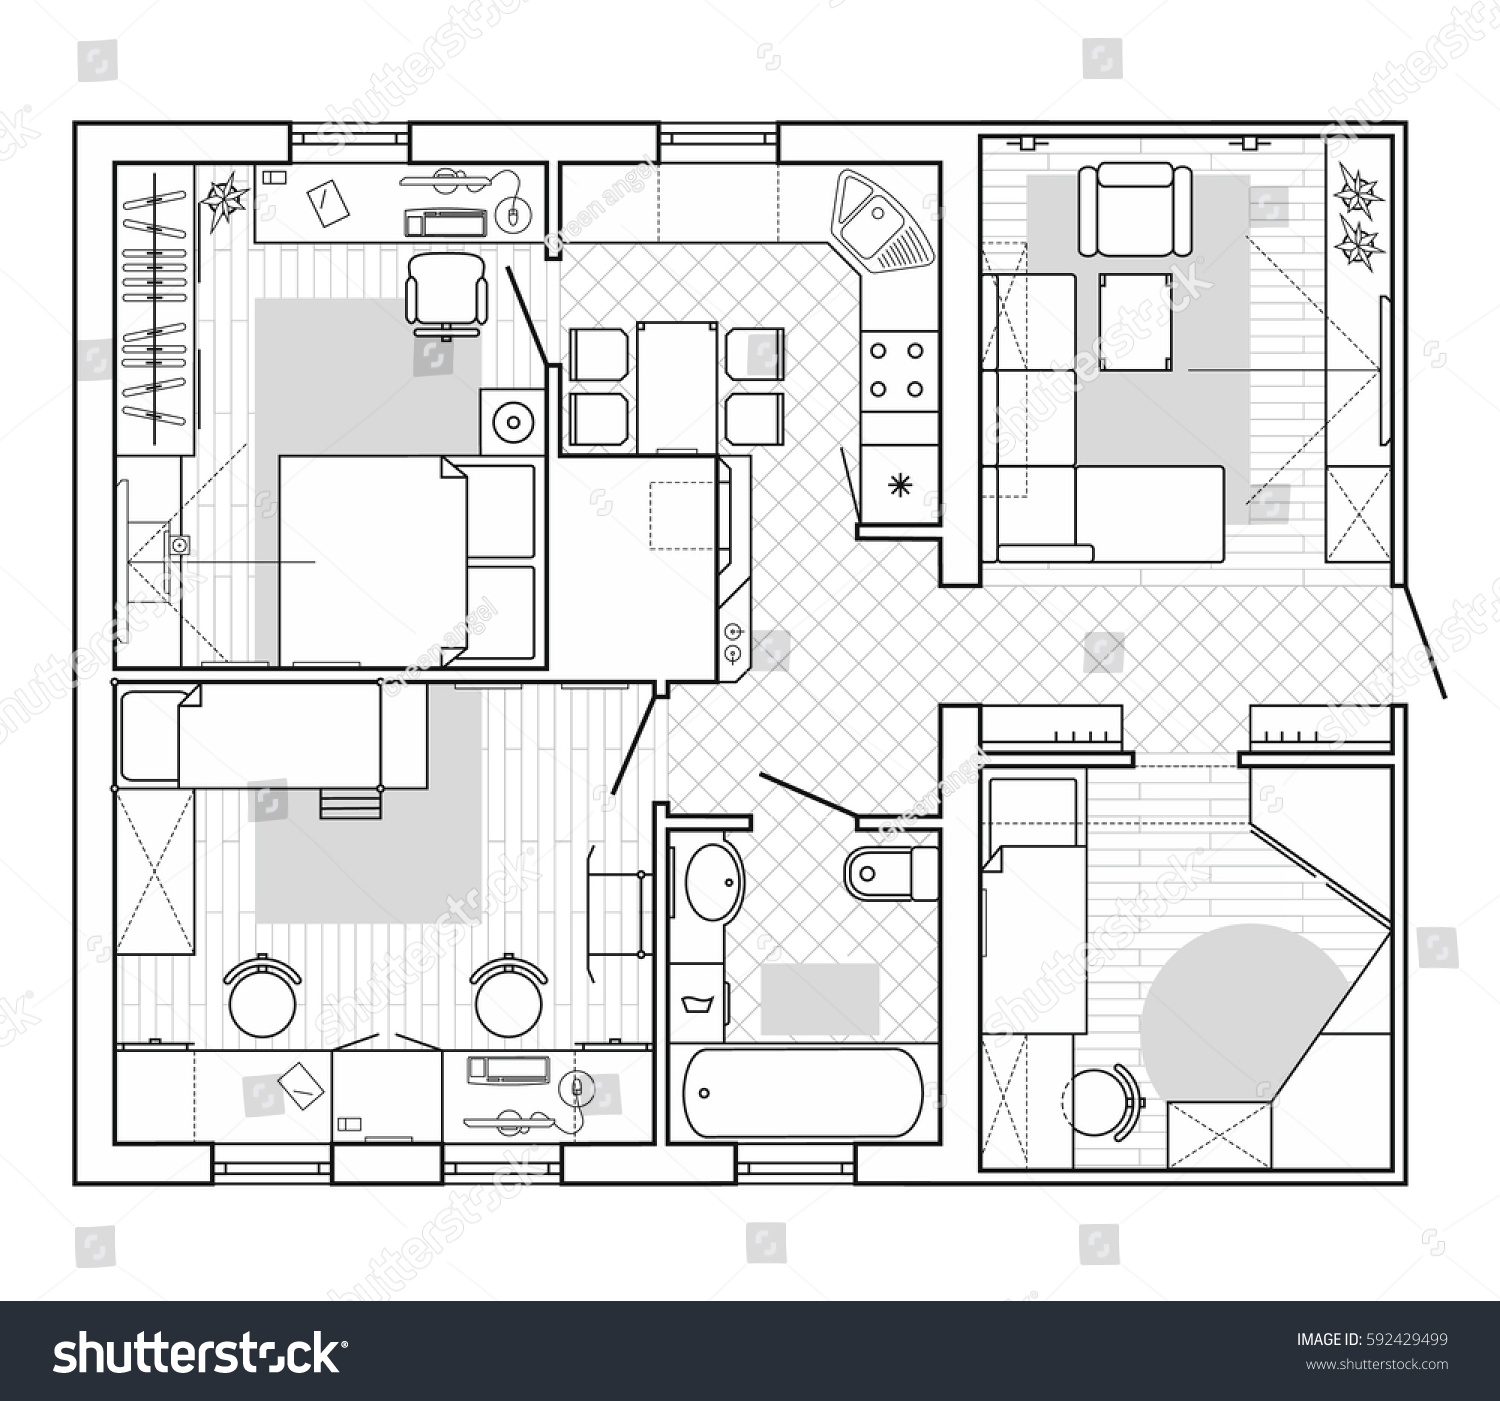 Black white architectural plan house layout stock vector for Interior house designs black and white